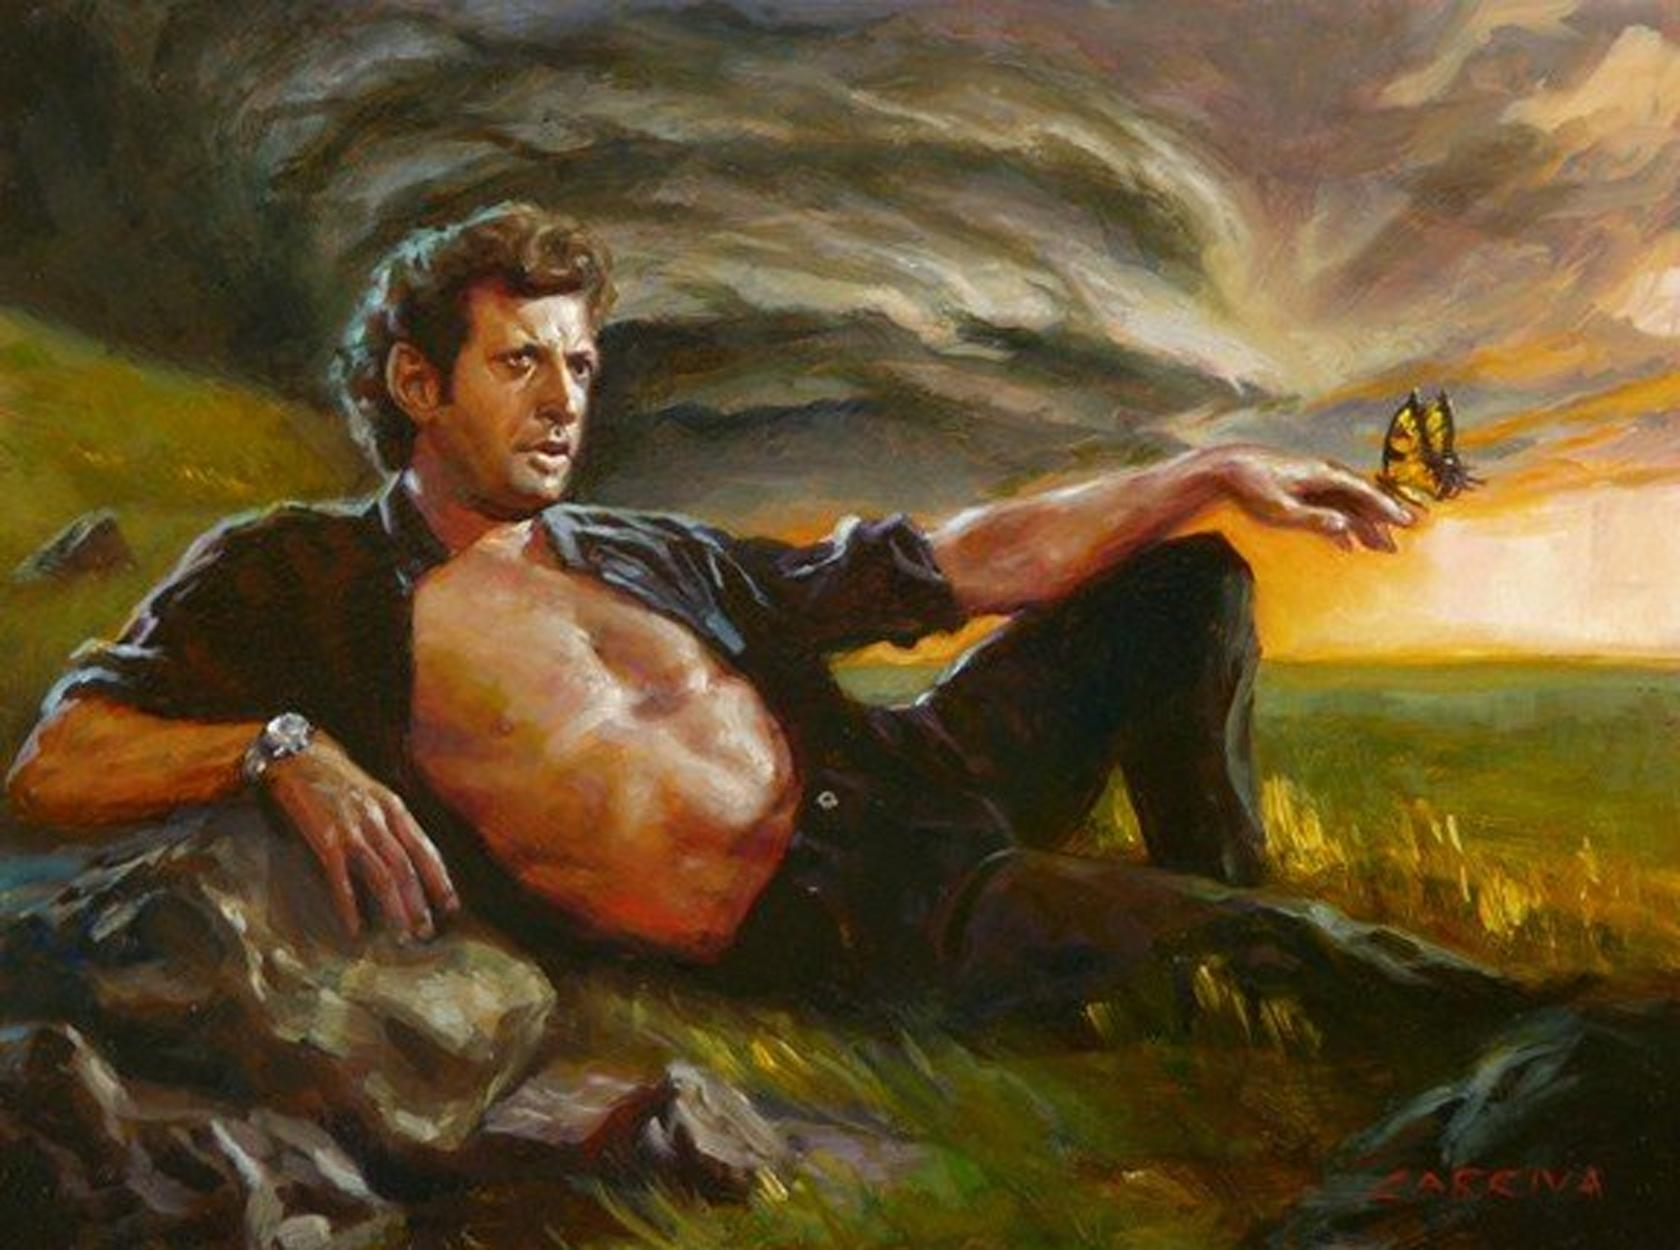 Jeff Goldblum.... : wallpapers